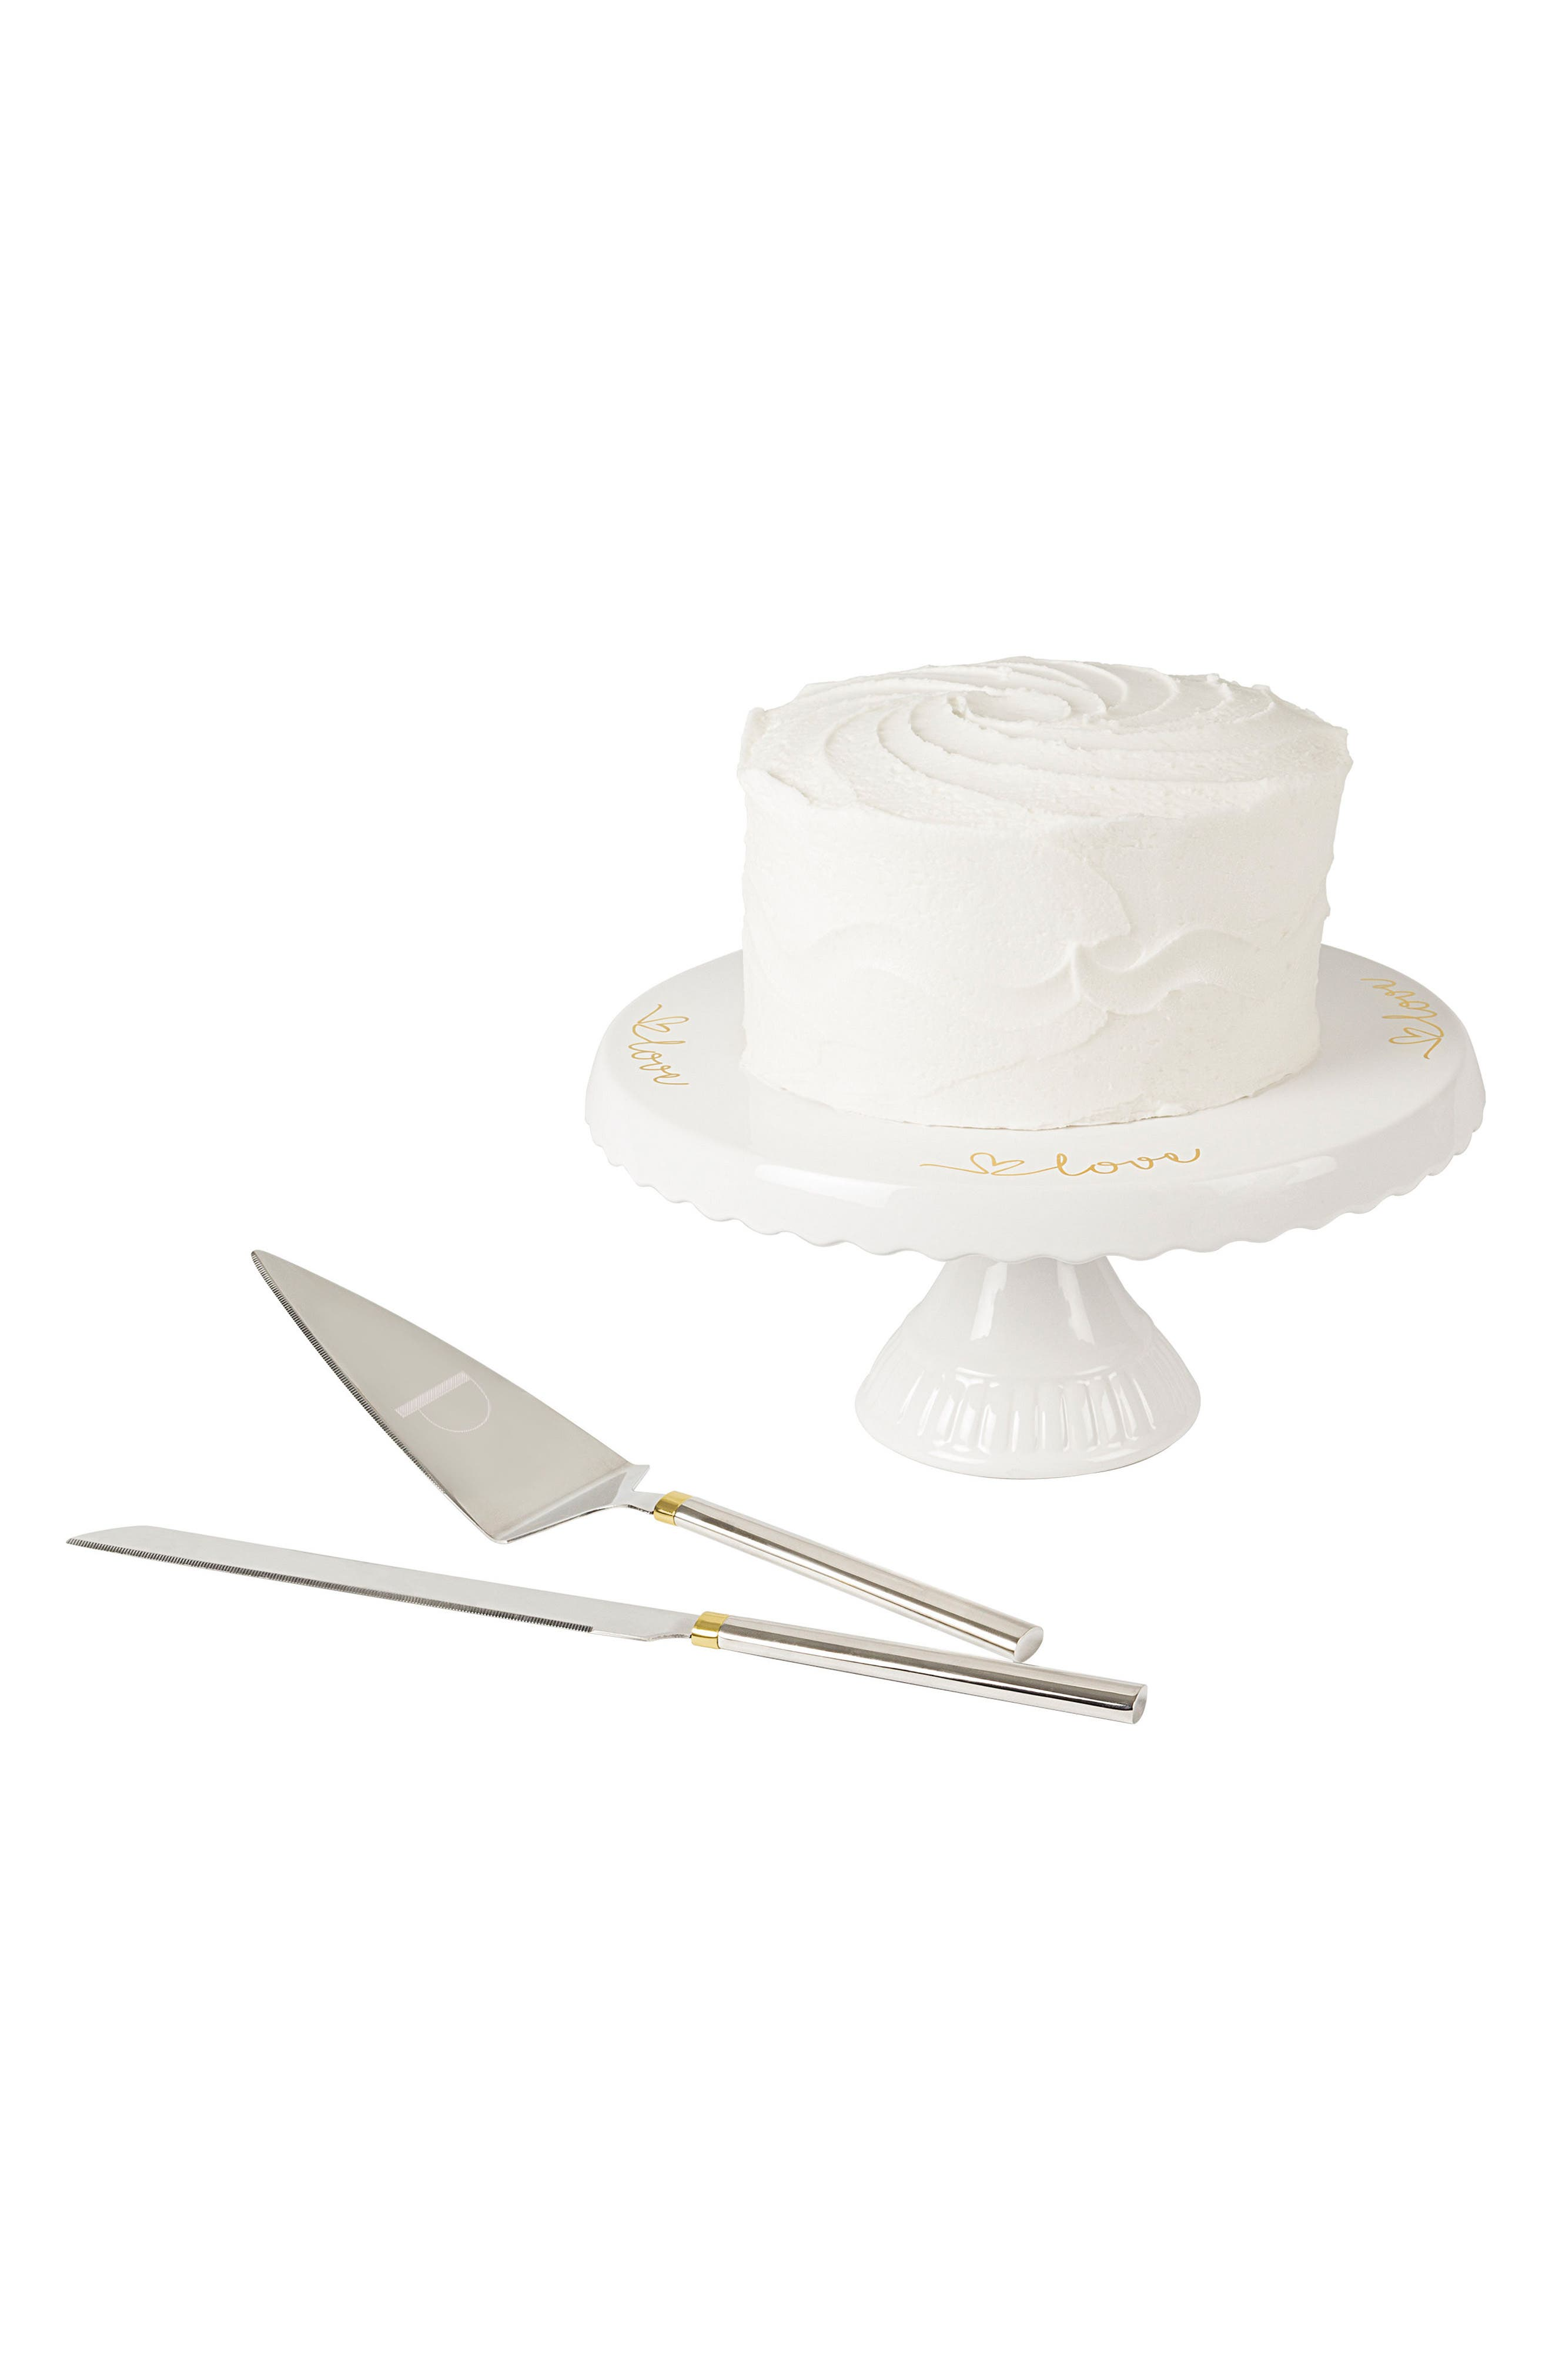 Love Monogram Cake Stand & Server Set,                             Main thumbnail 17, color,